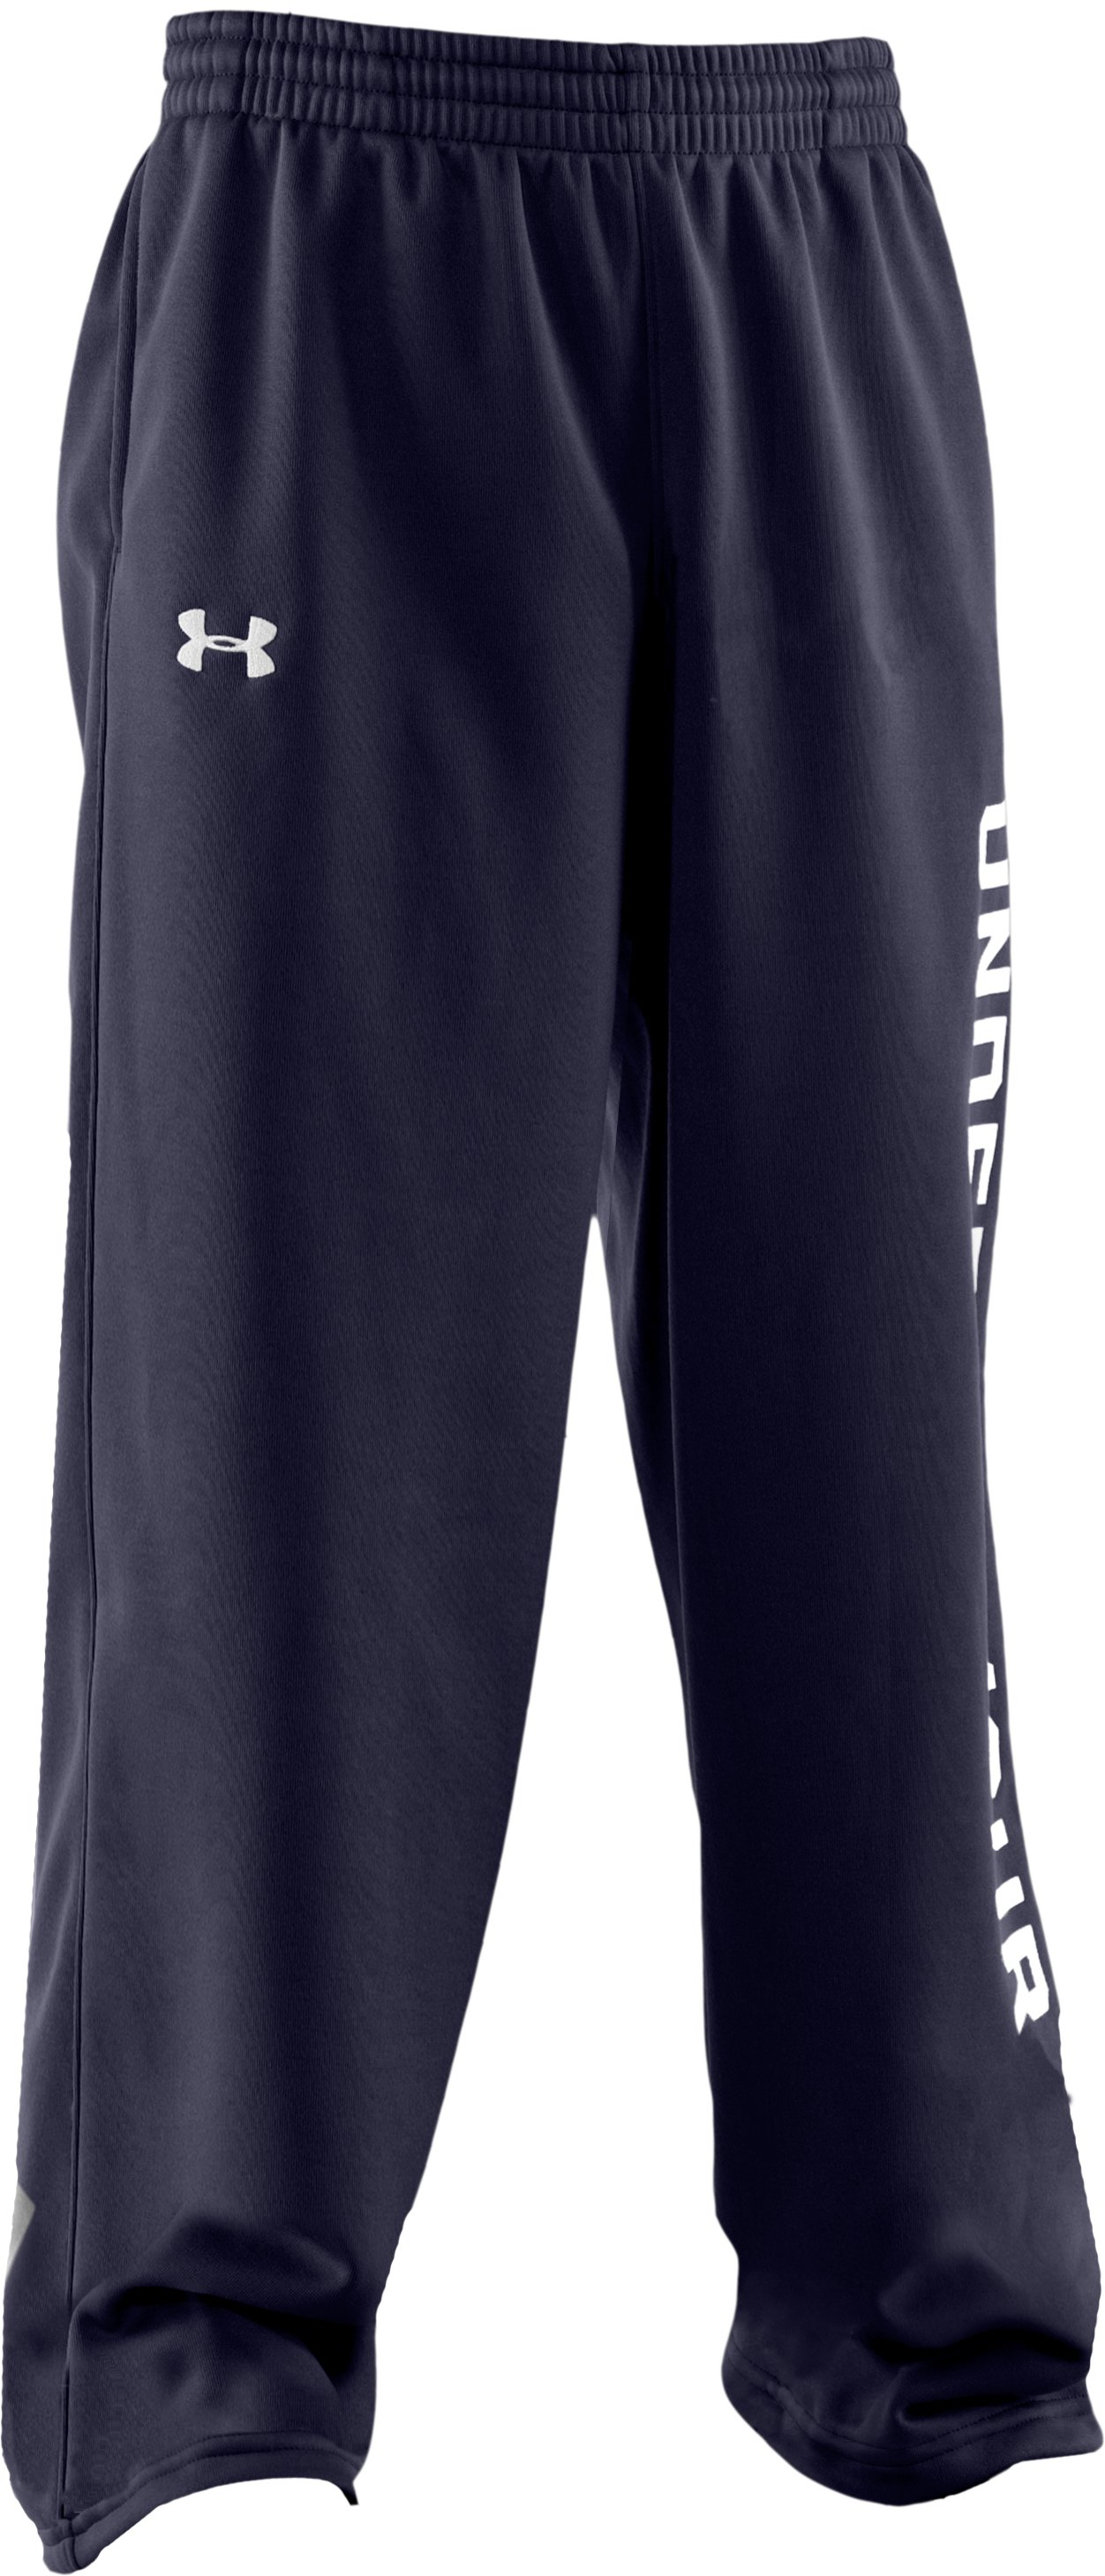 Boys' Armour® Fleece Storm Pants, Midnight Navy, zoomed image